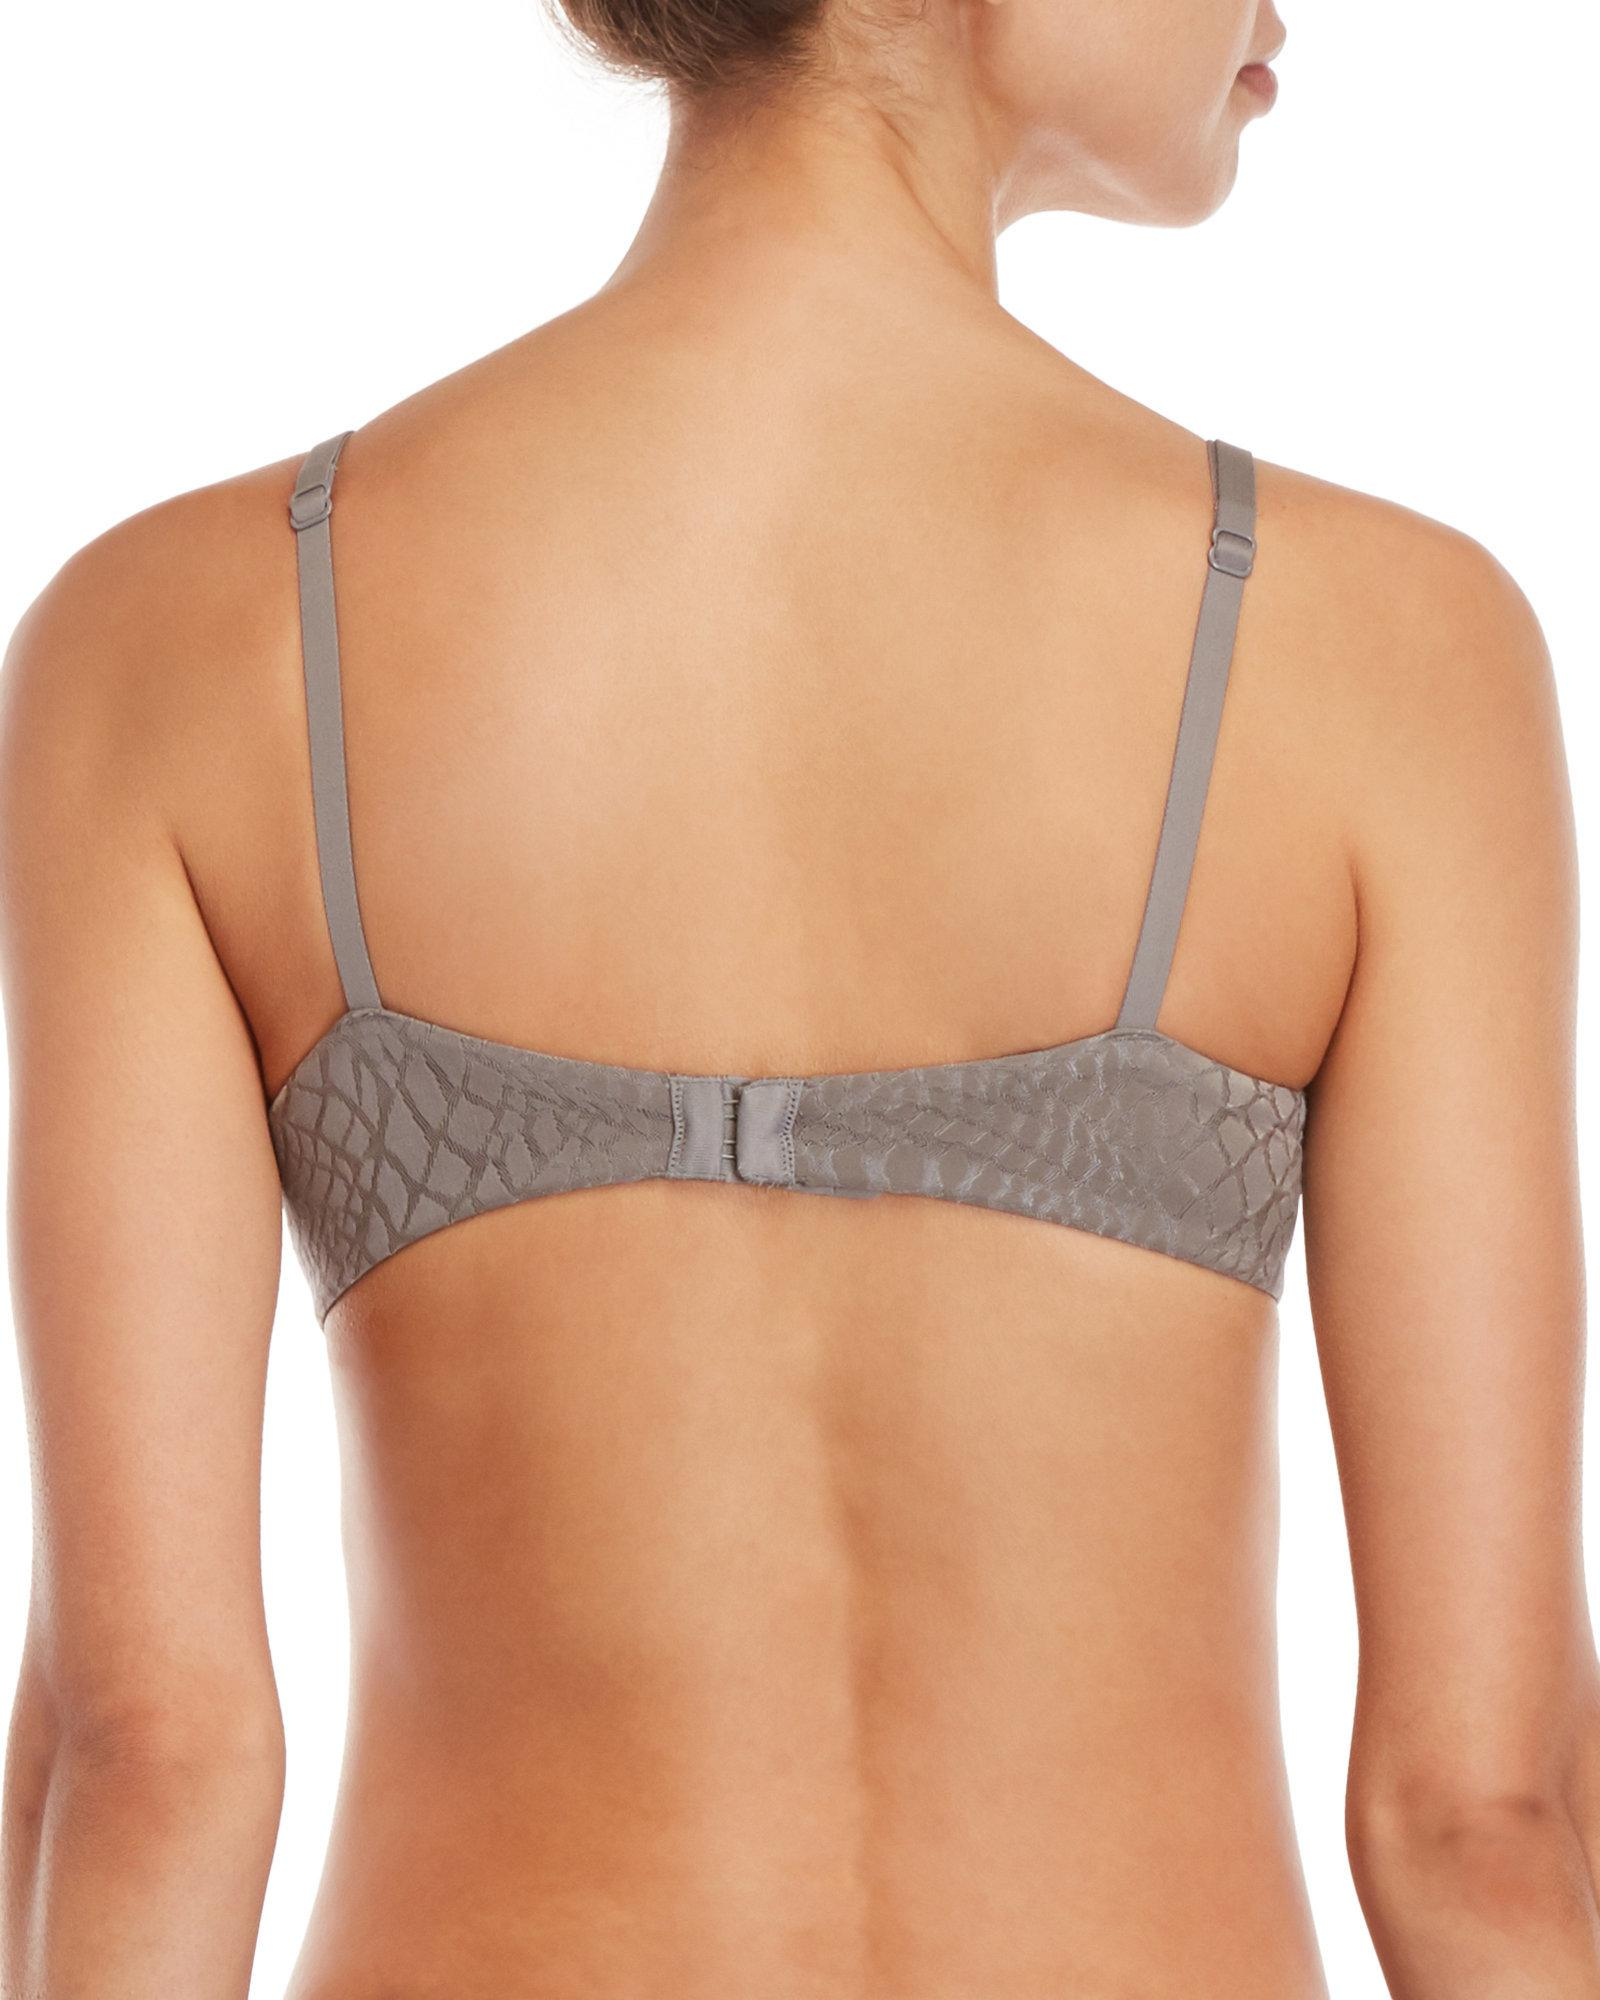 0484d1bcc2297 Maidenform Cotton T Shirt Bra - BCD Tofu House